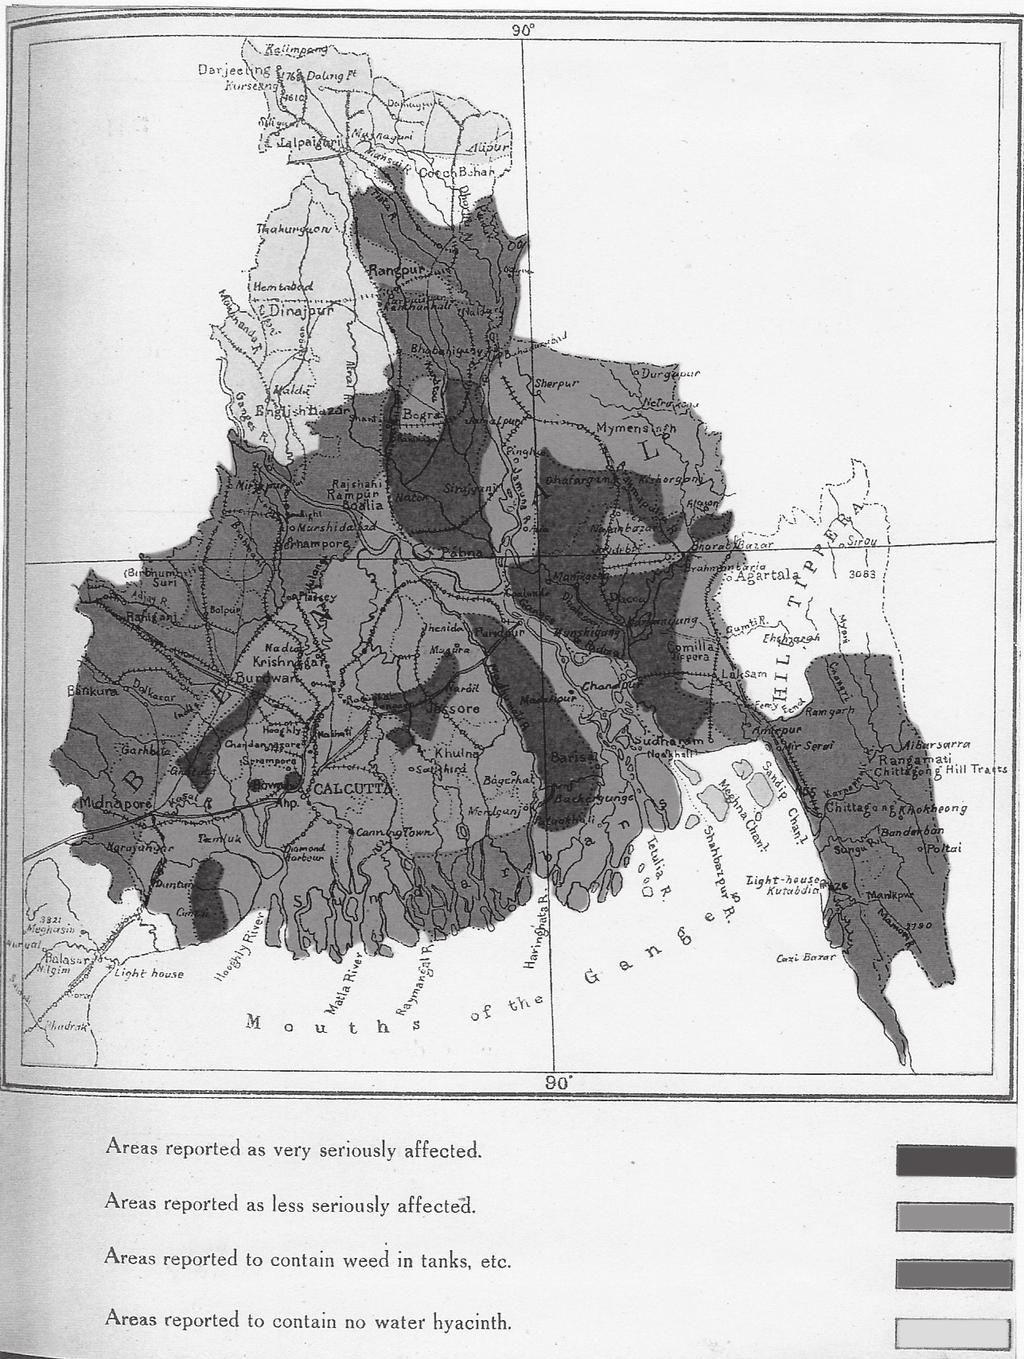 FIGHTING WITH A WEED 199 FIGURE 1. A map of Bengal showing areas affected by water hyacinth. Source: Kenneth McLean, Water Hyacinth.